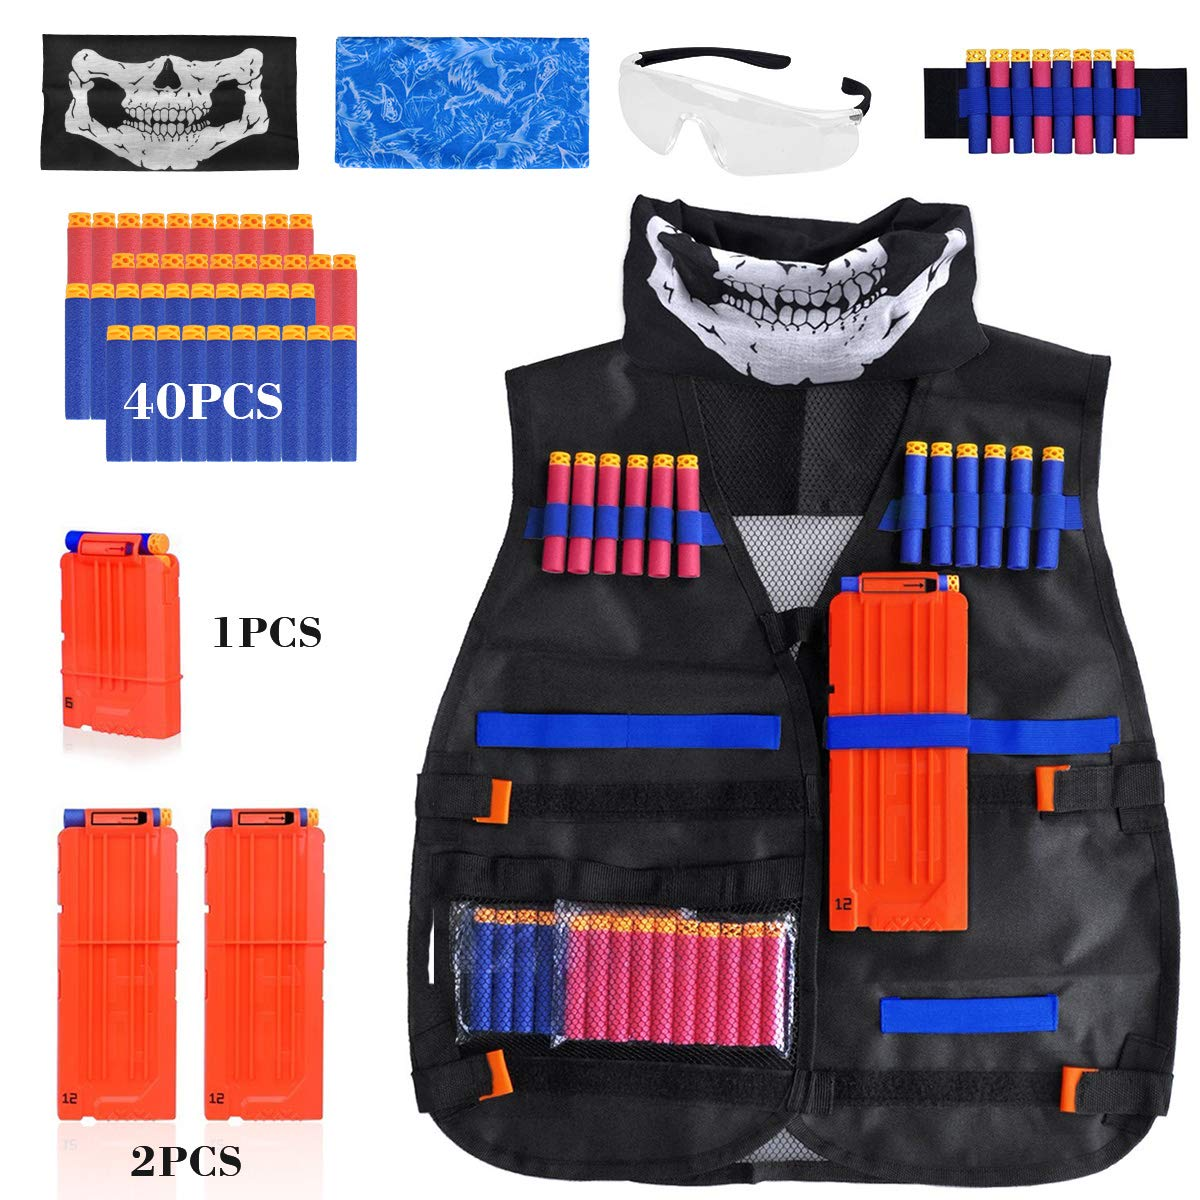 Kids Tactical Vest Kit for Nerf Guns N-Strike Elite Series, with 40 Pcs Refill Darts, 3 Reload Clips, 2 Face Tube Masks, 1 Hand Wrist Band and Protective Glasses